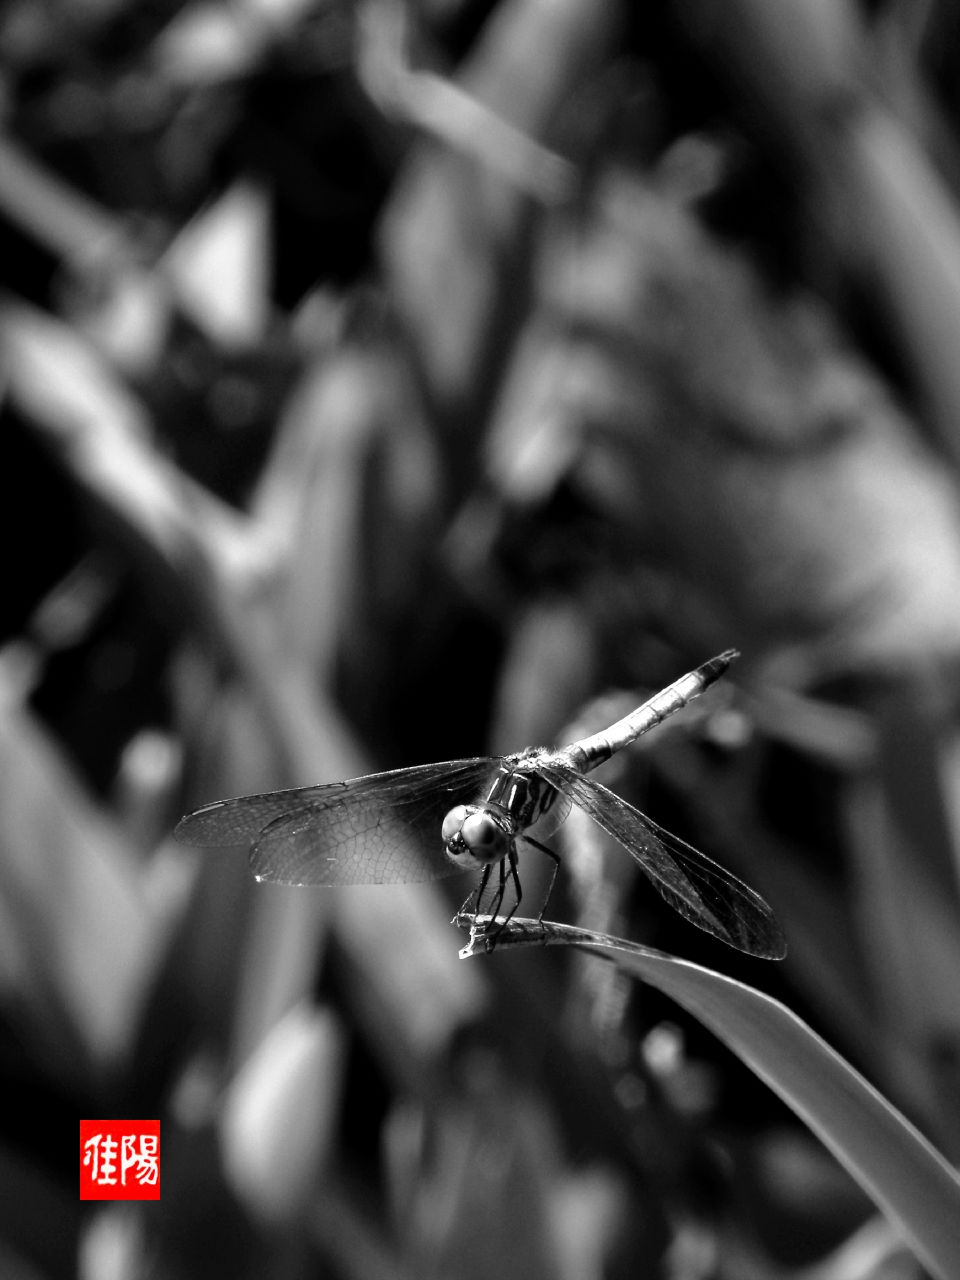 P80-ORF_Dragonfly02-2009_08-29